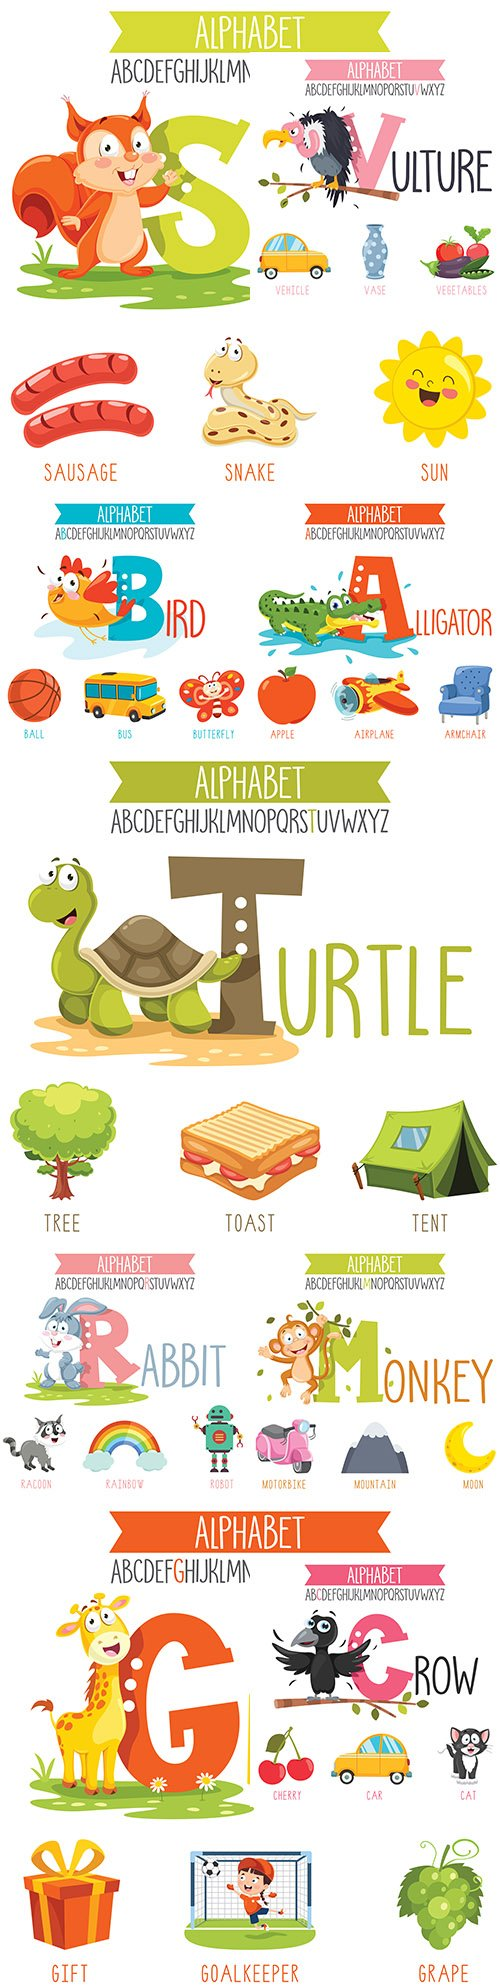 Alphabet letter and illustration animation objects